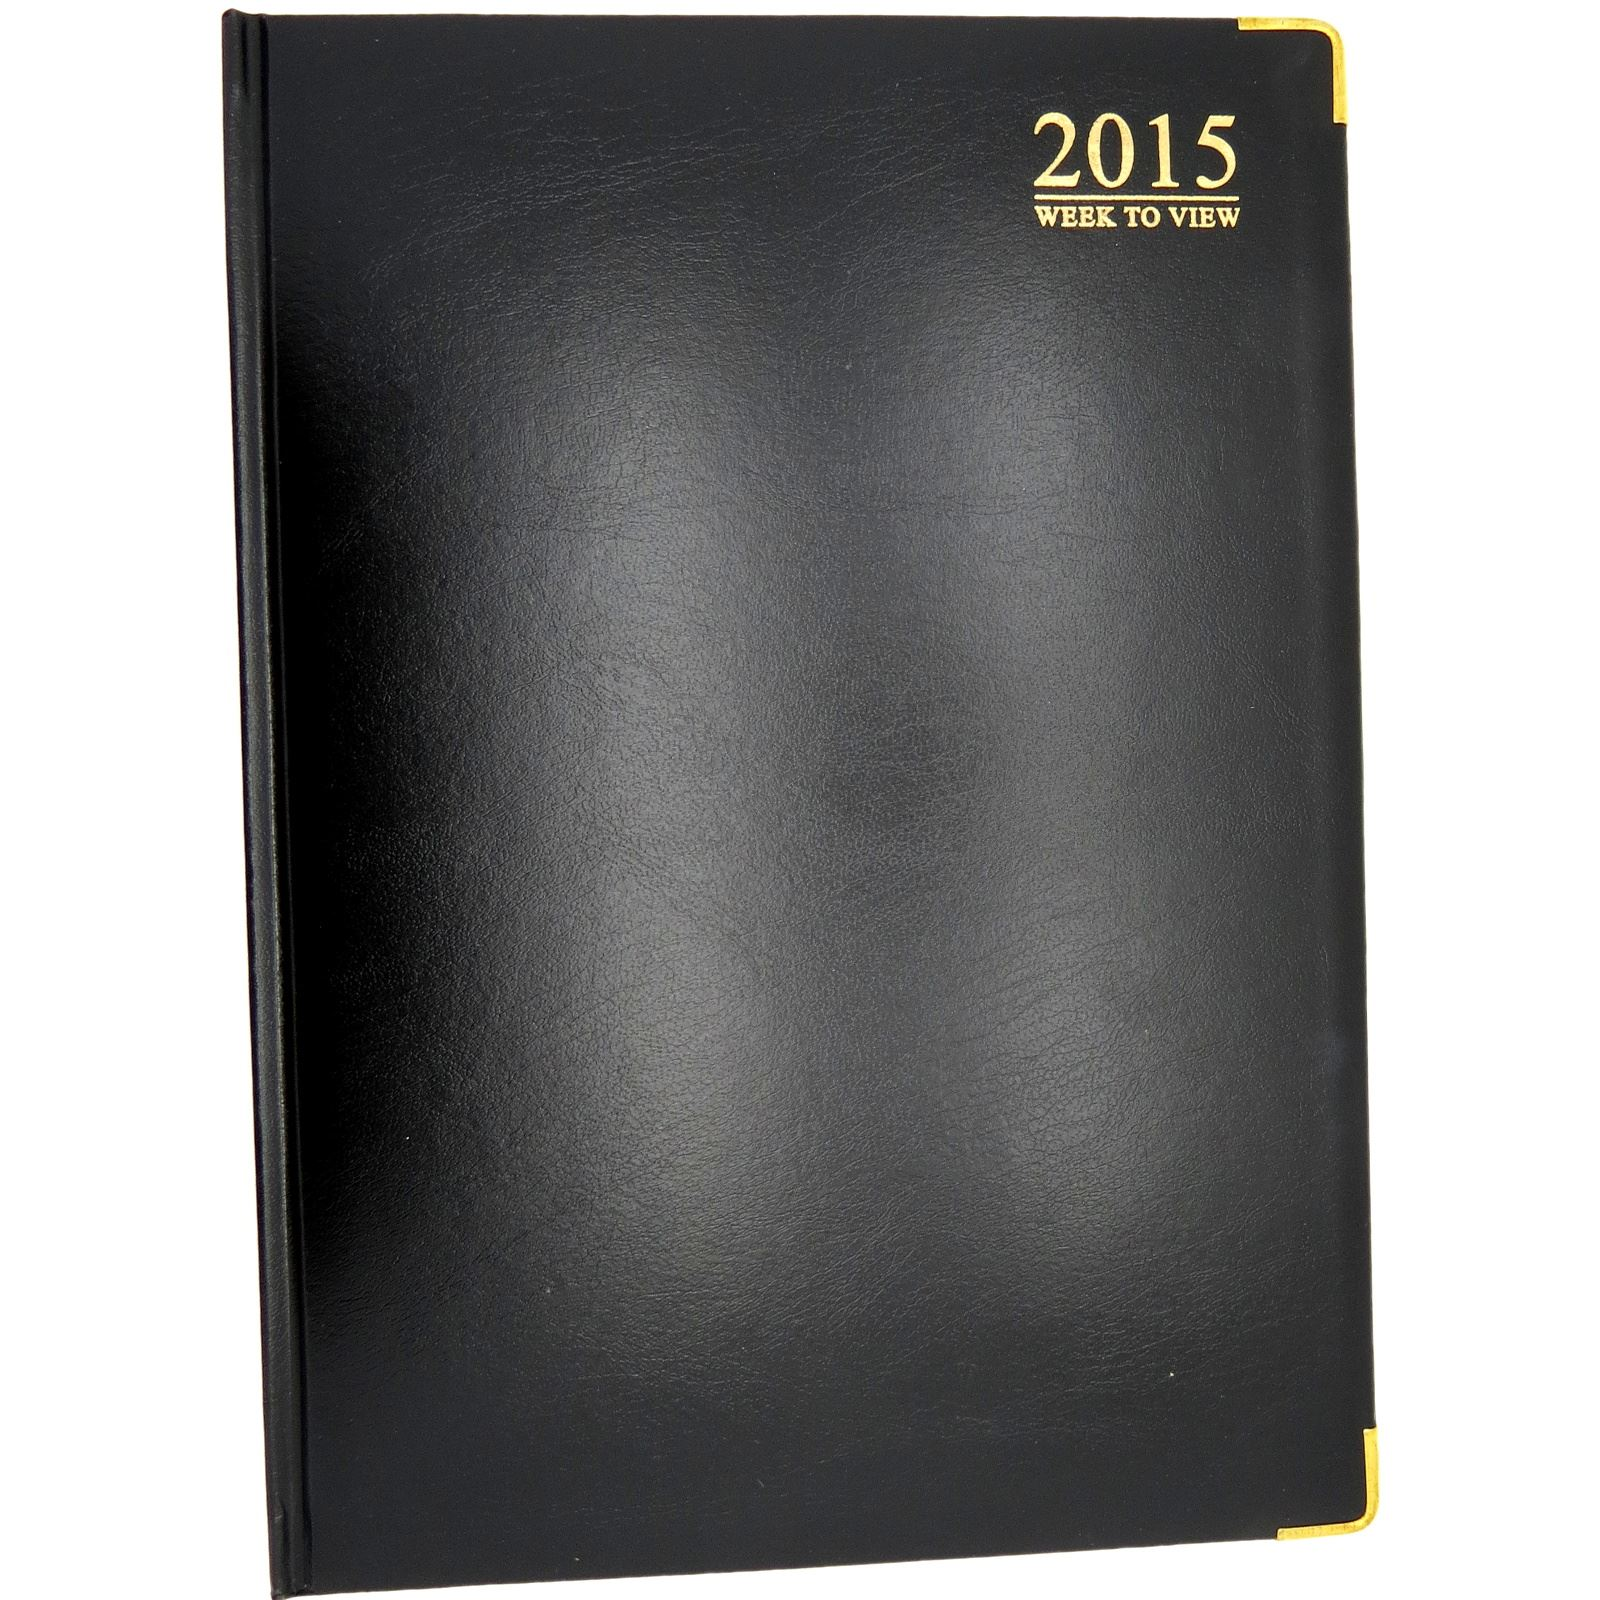 WEEK-TO-VIEW-CORNER-GILT-EDGED-PADDED-DIARY-CALENDAR-2015-ORGANISER-A5-A4-SIZE